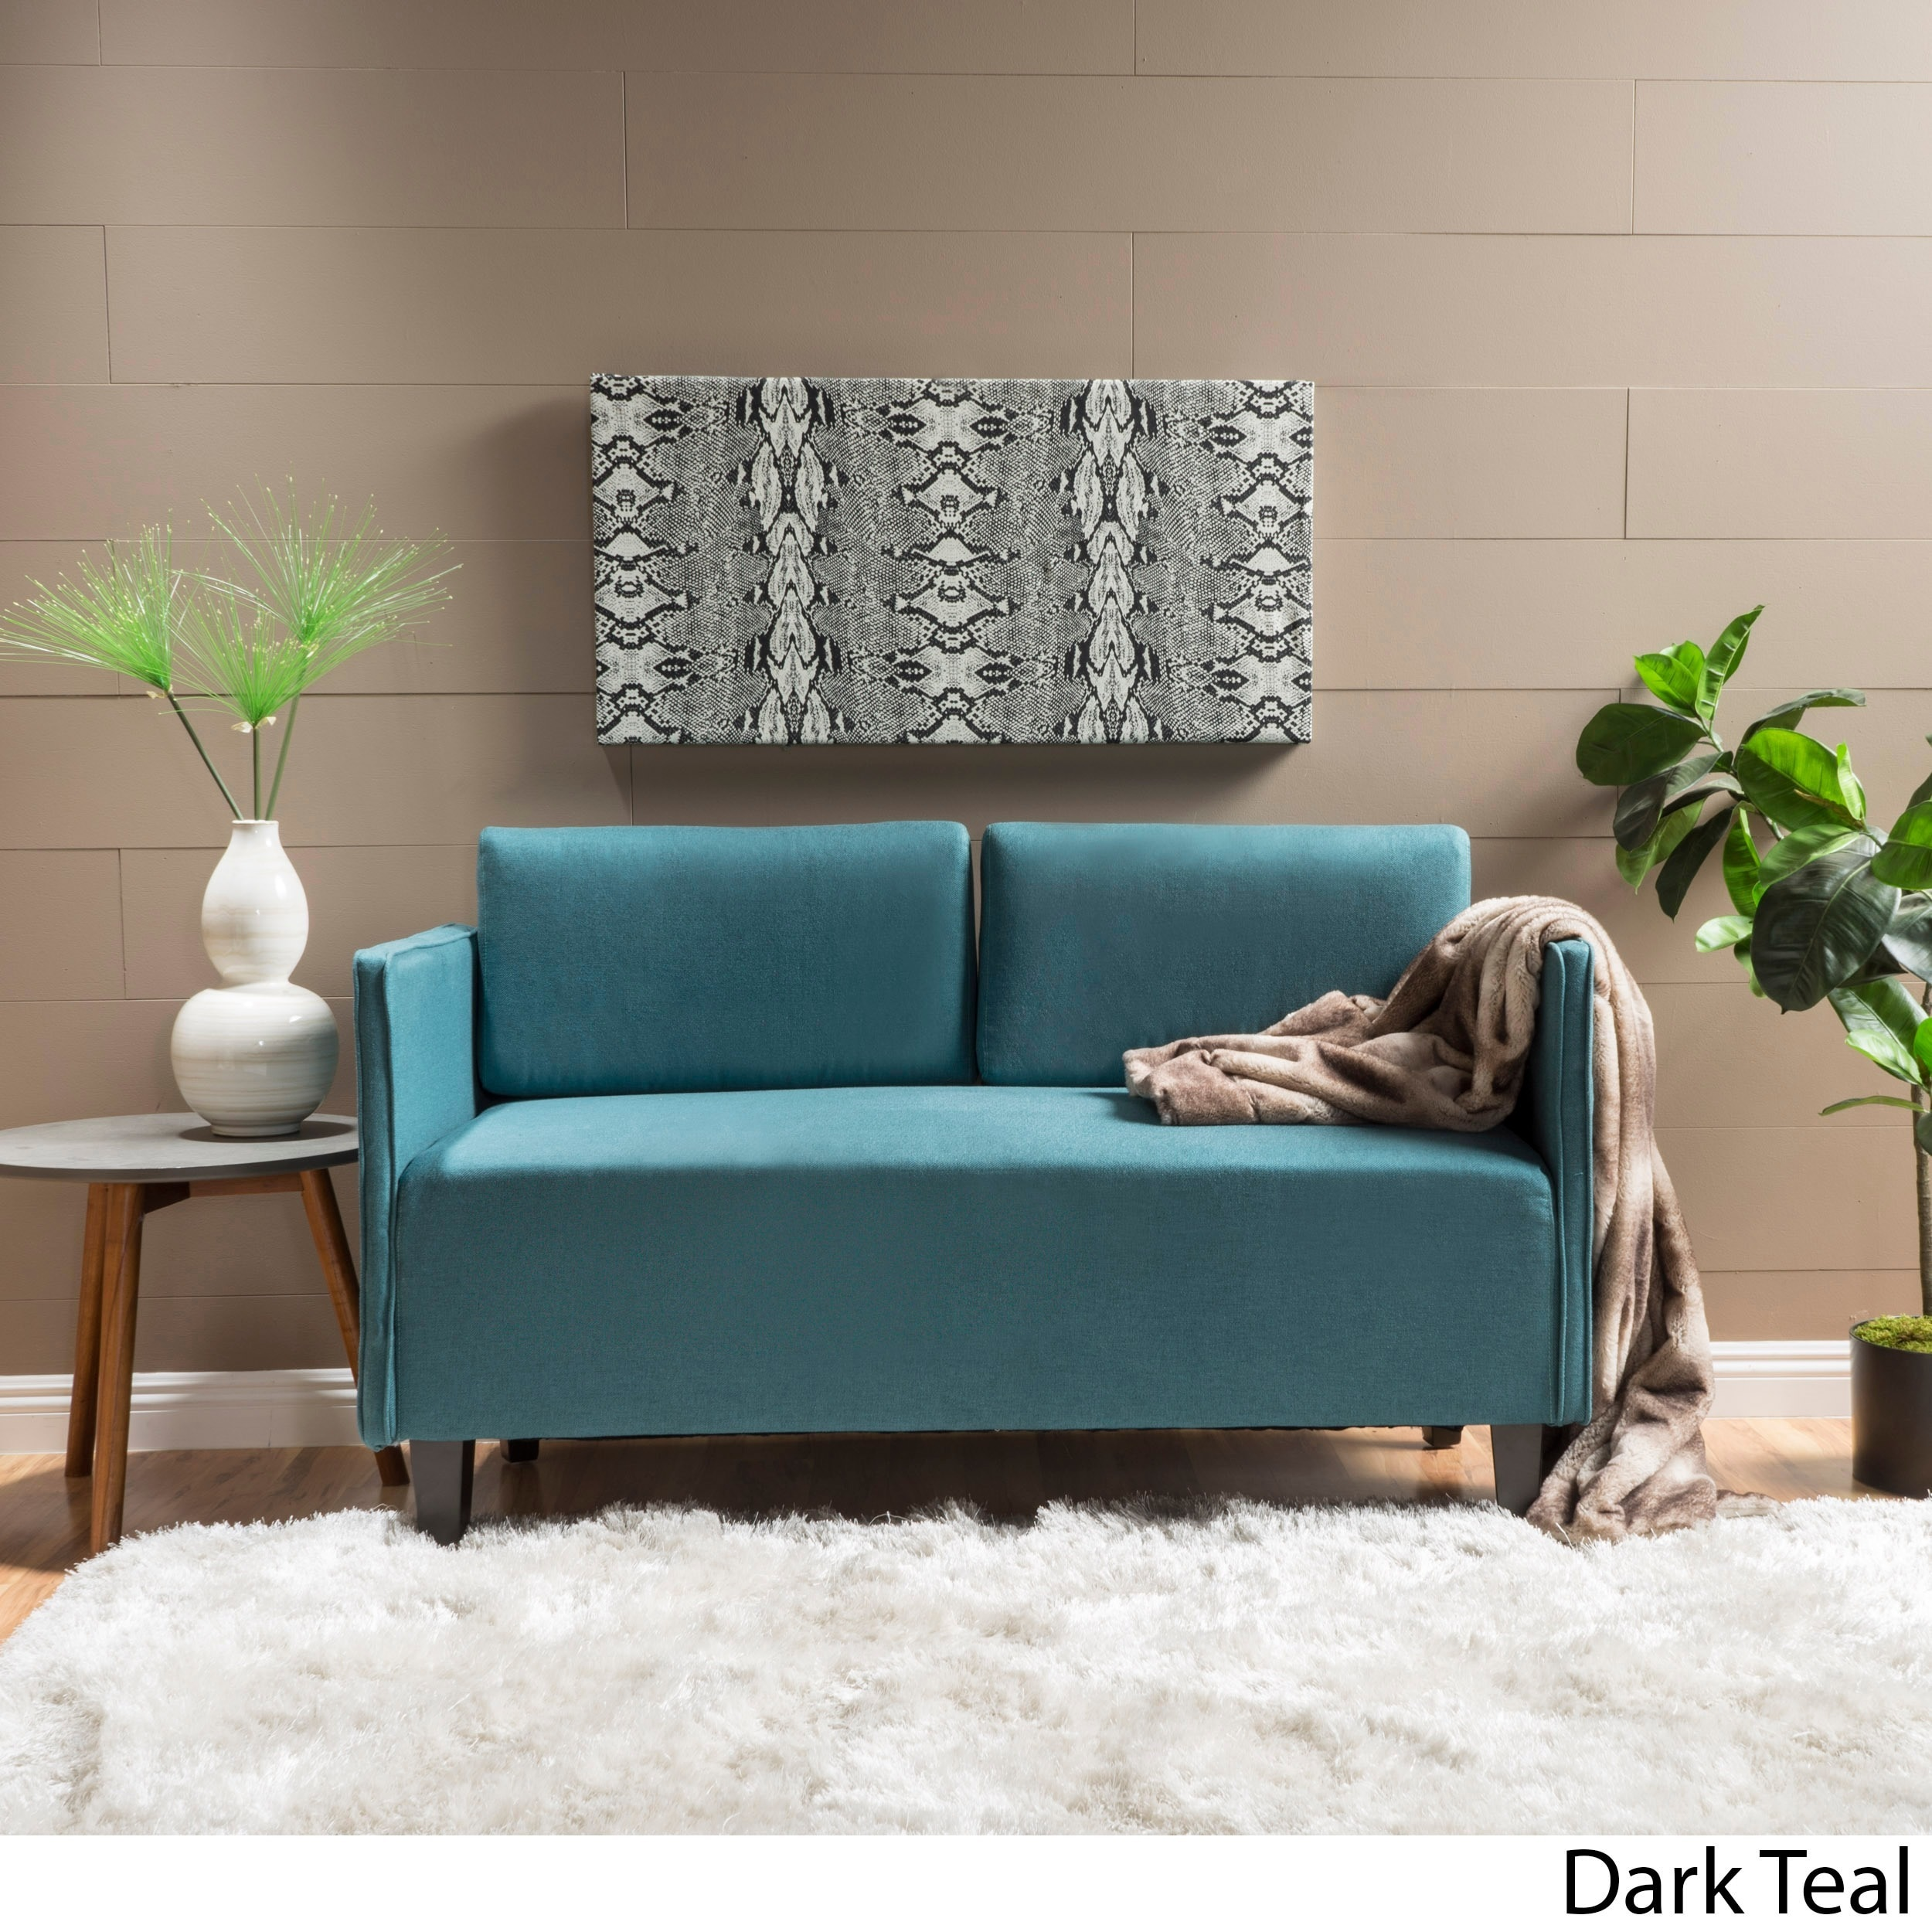 sierra freight rooms couches loveseat brown love loveseats american living sofas discount couch sofa chocolate